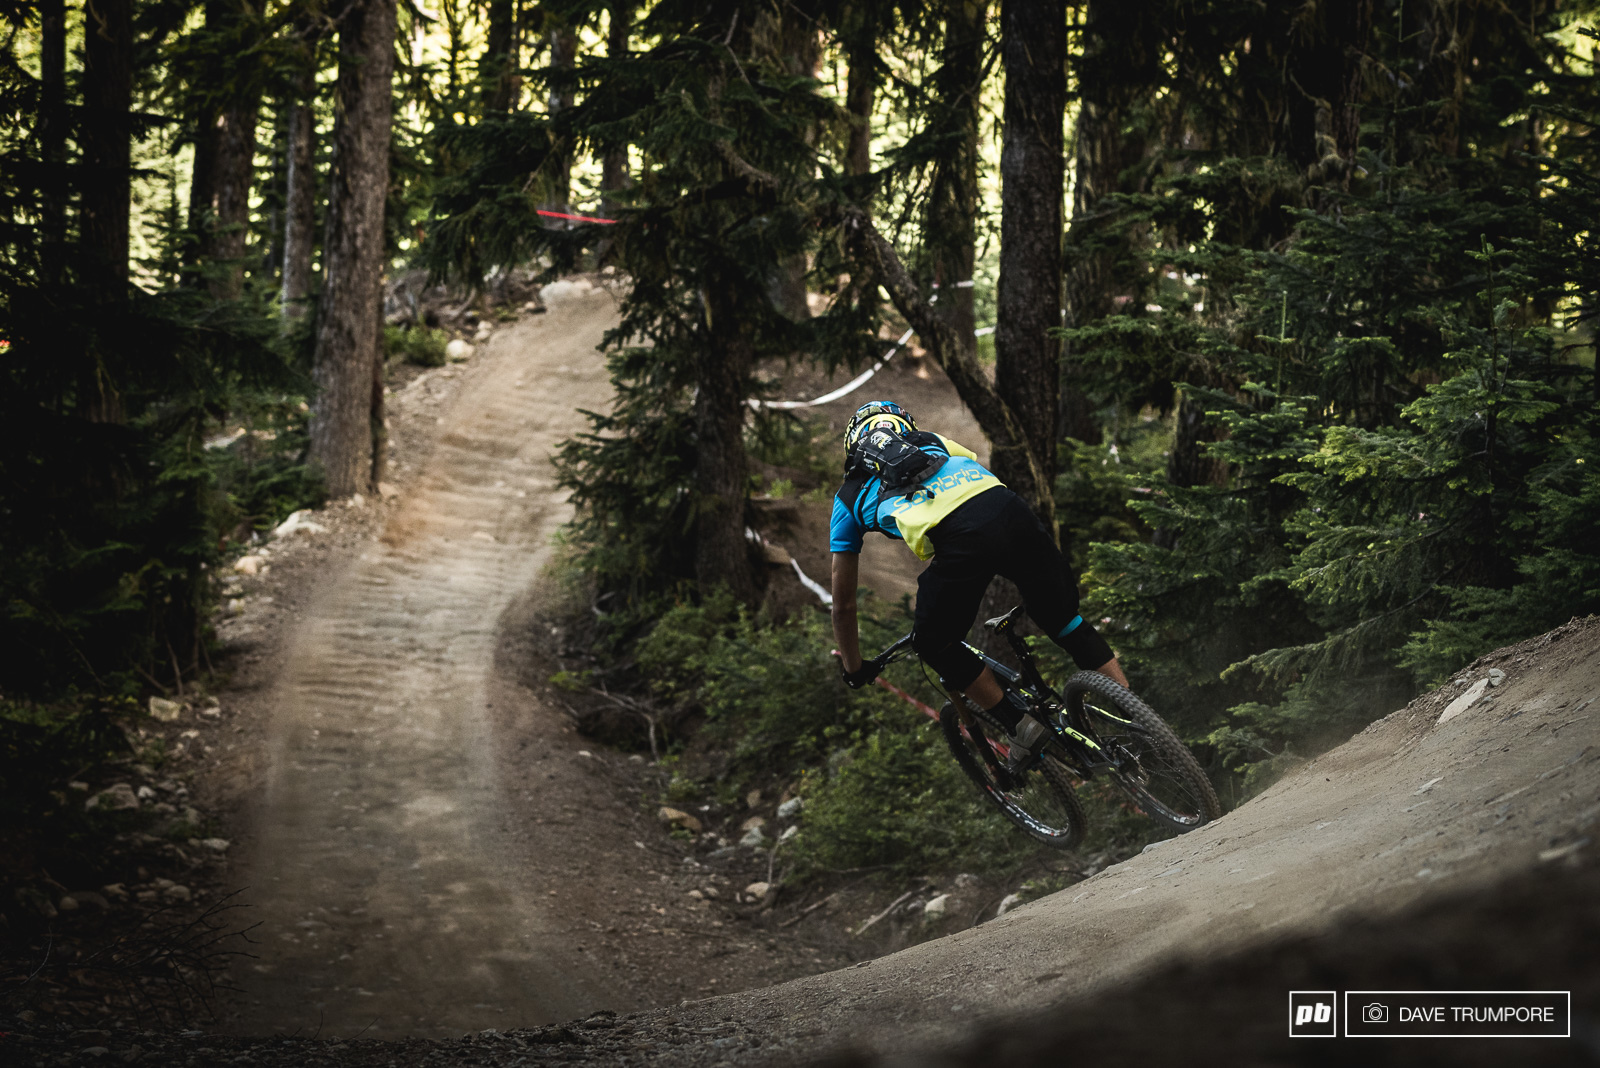 Jackson Frew was one of many downhill racers trying their hand at the EWS for the first time and would finish the day 4th in the U-21 category. Quite a respectable result for a first timer.